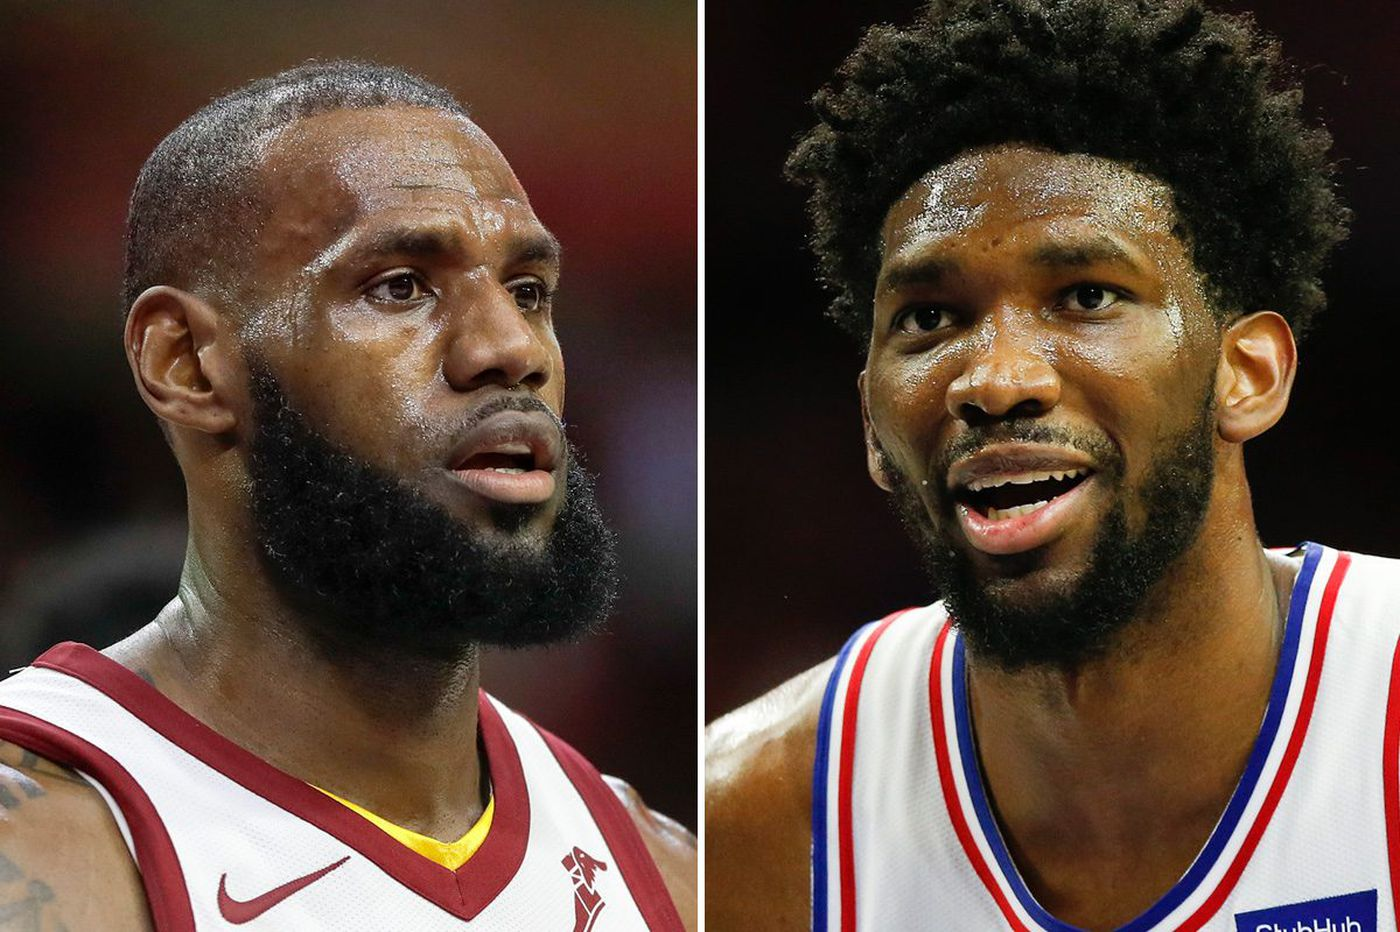 LeBron James urged by billboards in Cleveland to join Sixers